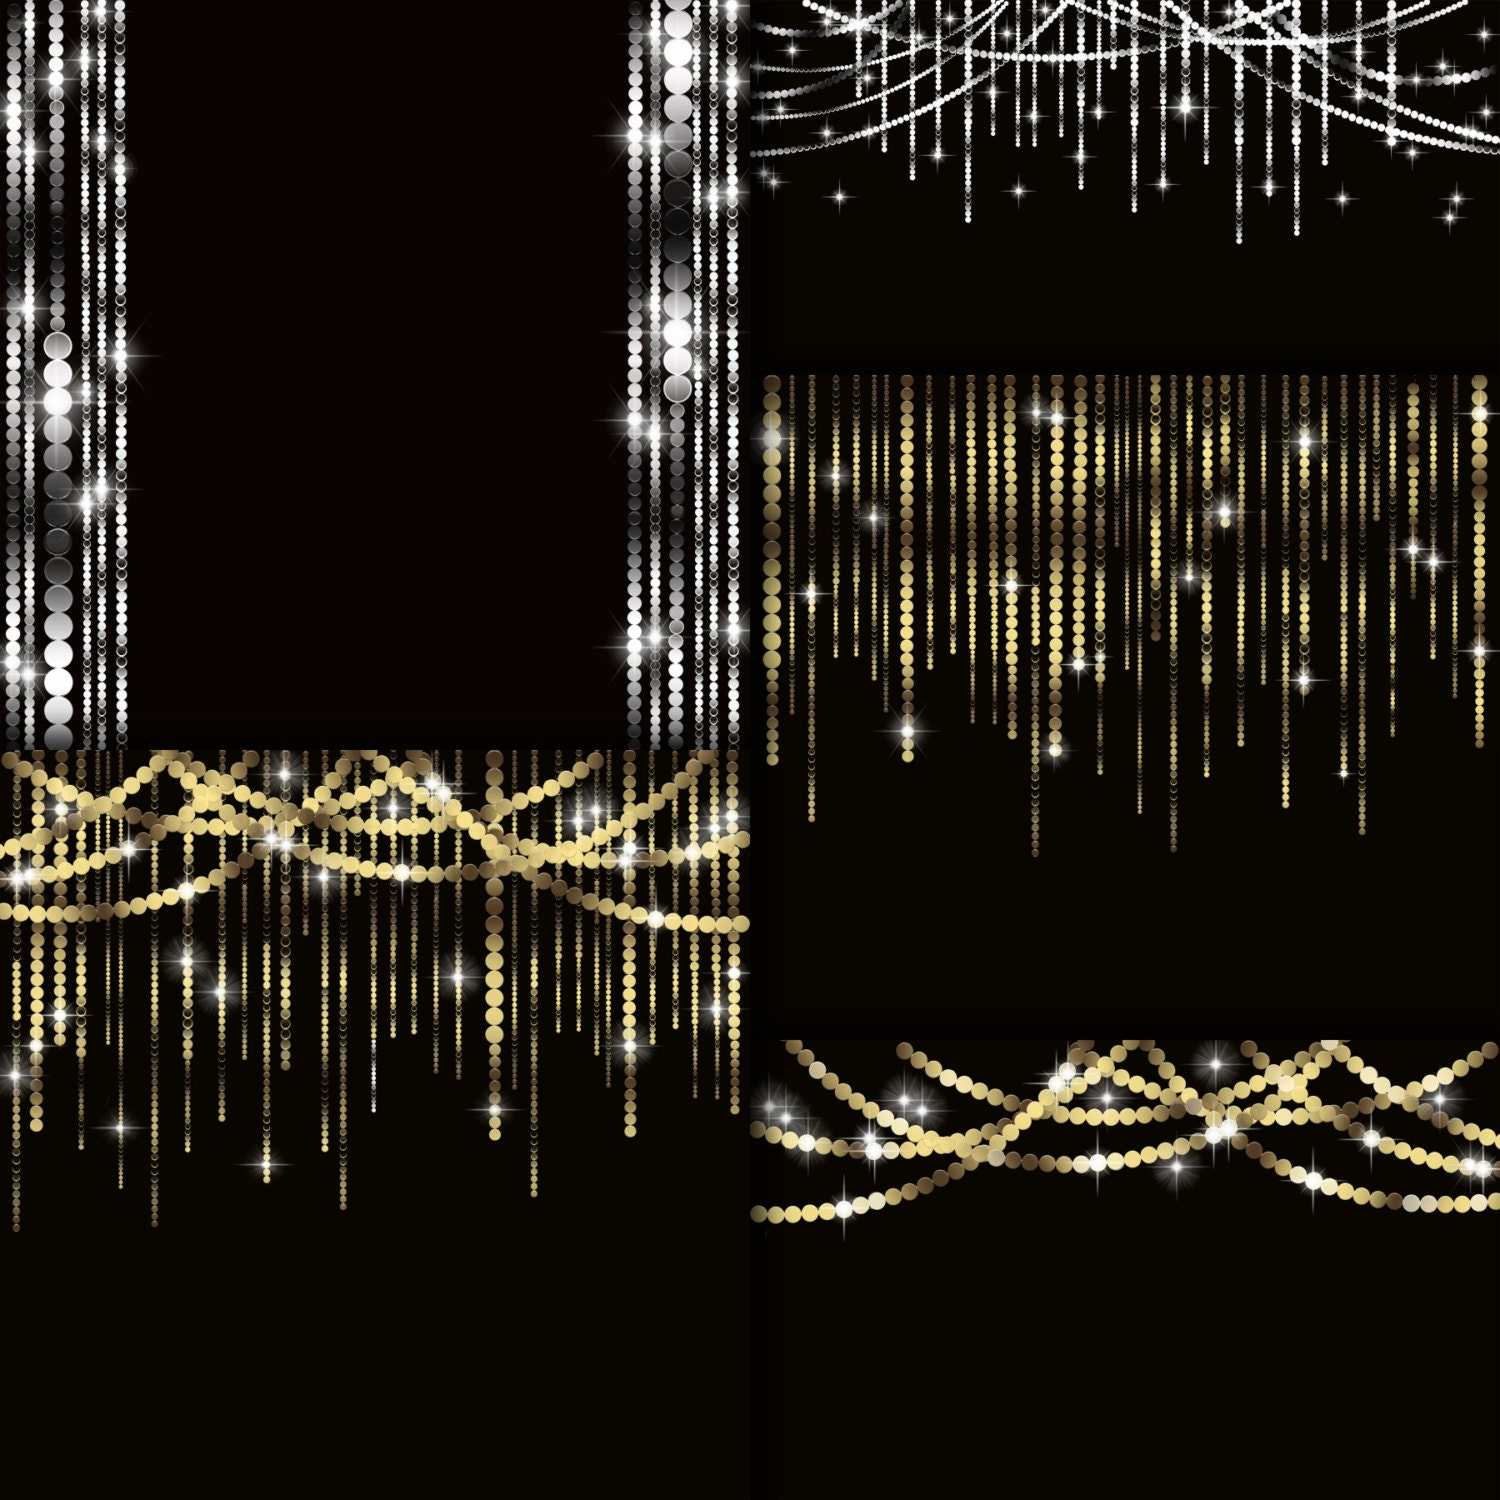 Garland clipart String lights digital clipart Silver Gold sparkling clipart for party, christmas ...